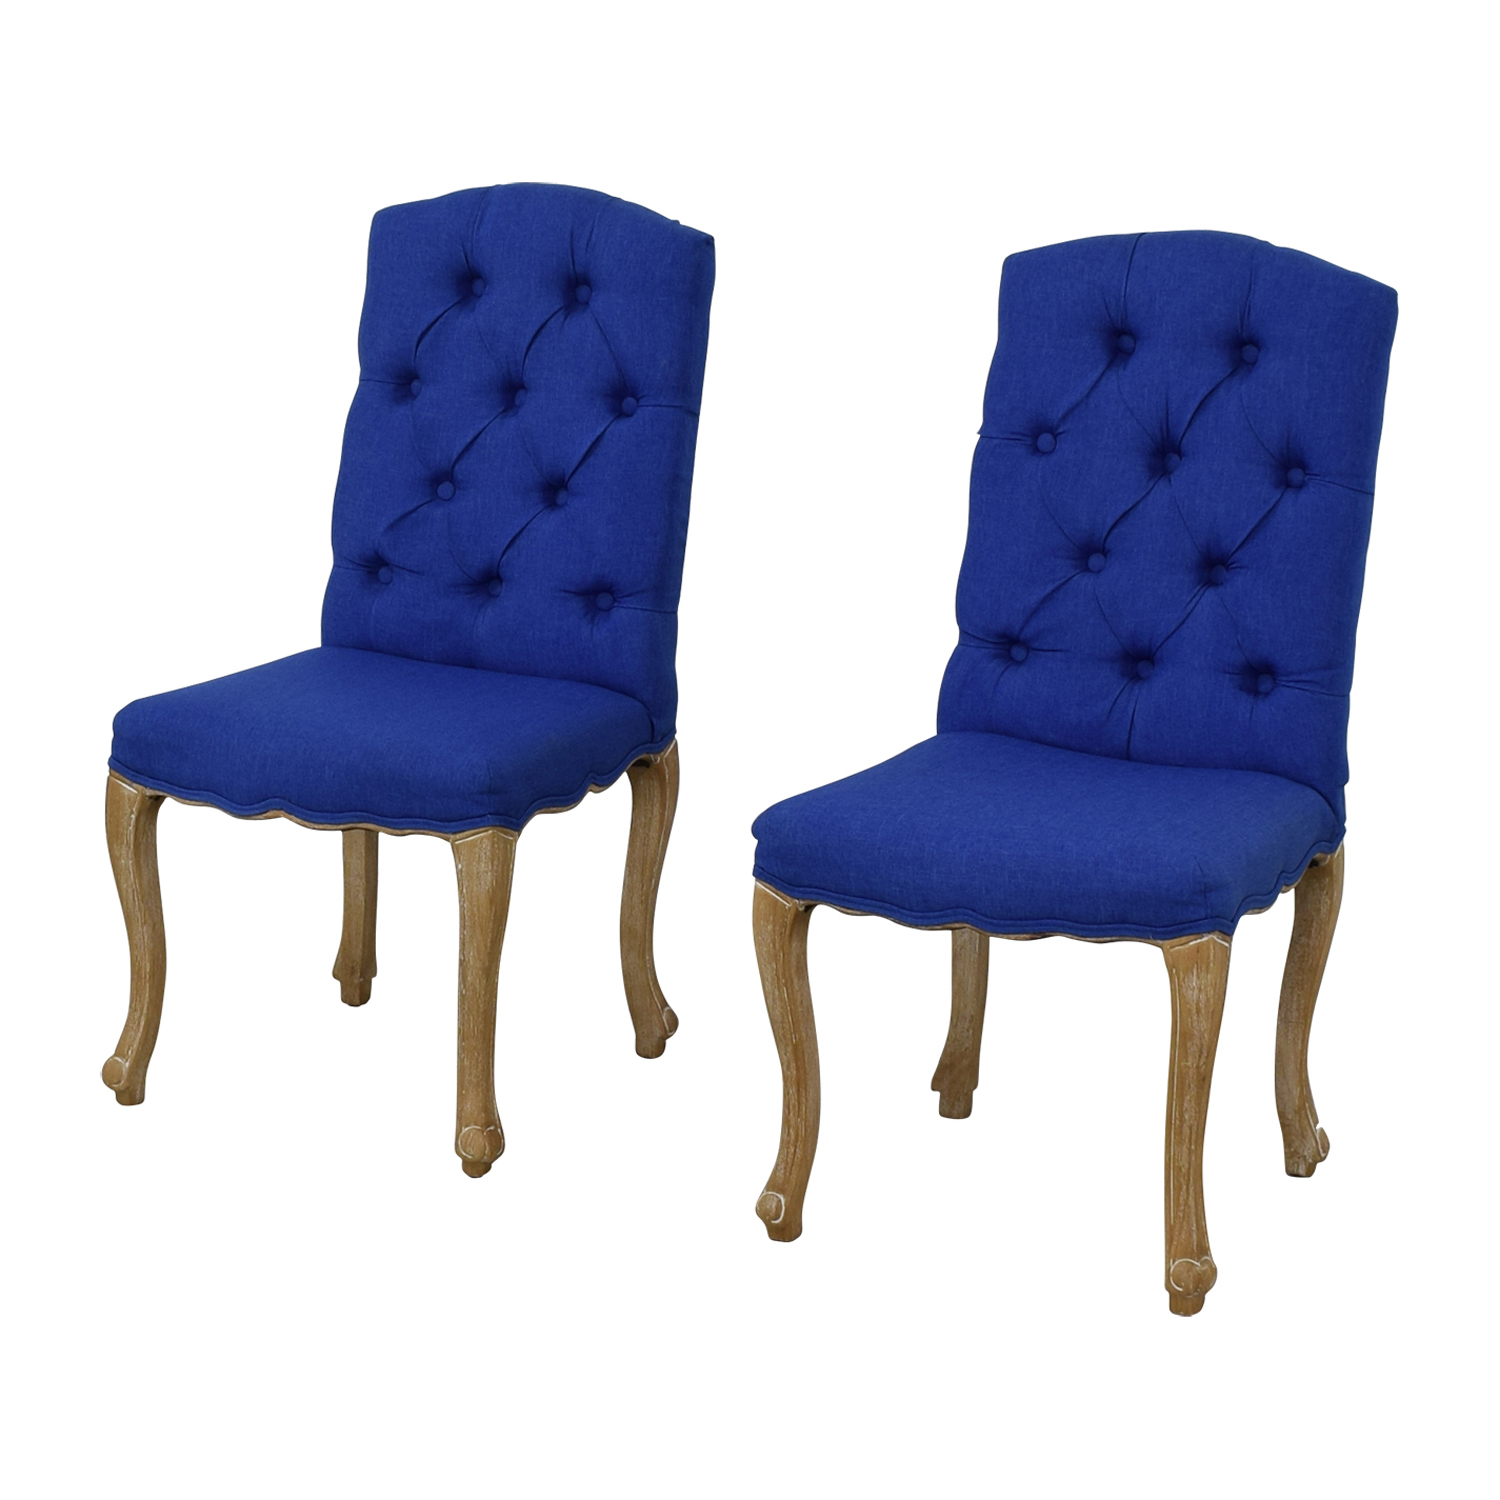 65 Off Royal Blue Tufted Back Dining Chairs Chairs